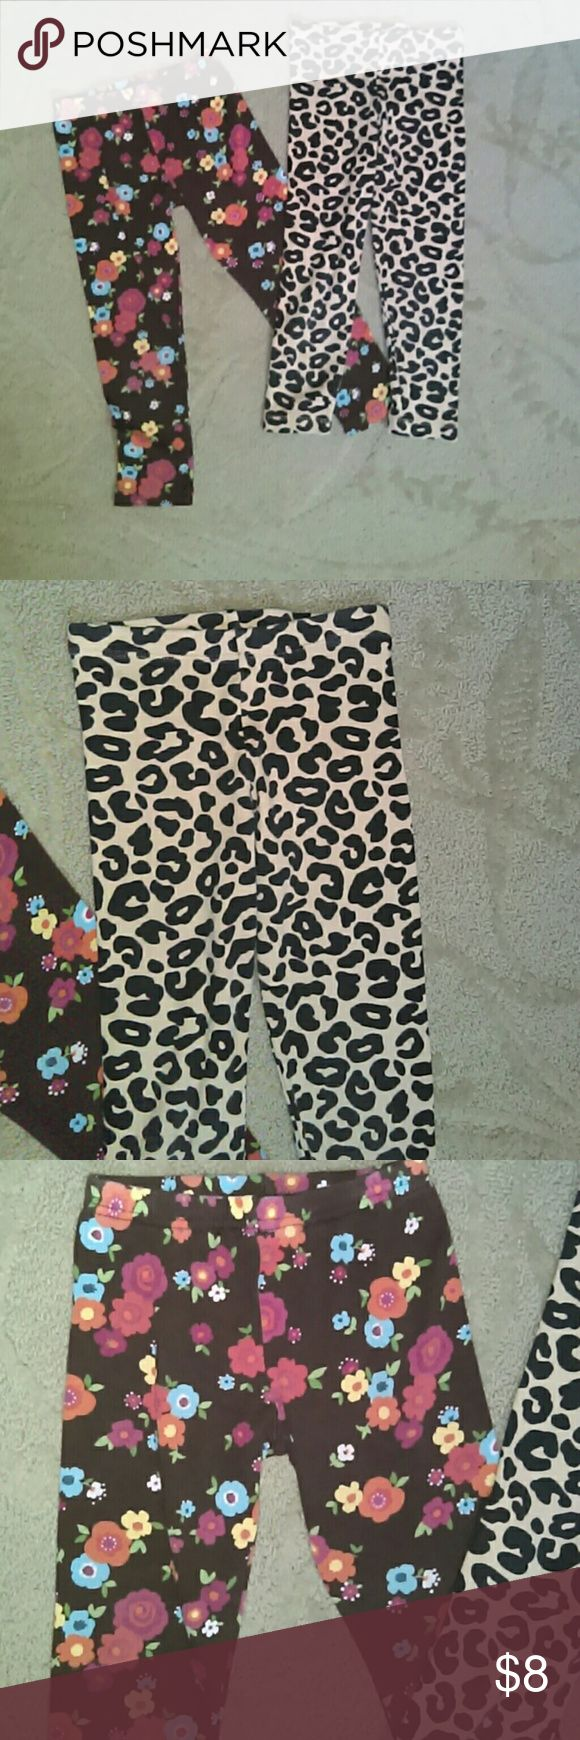 Girls 4t leggings..2 pairs 1 pair brown leggings with blue and yellow flowers...2ND pair brown and black leopard print. Gymboree Bottoms Leggings